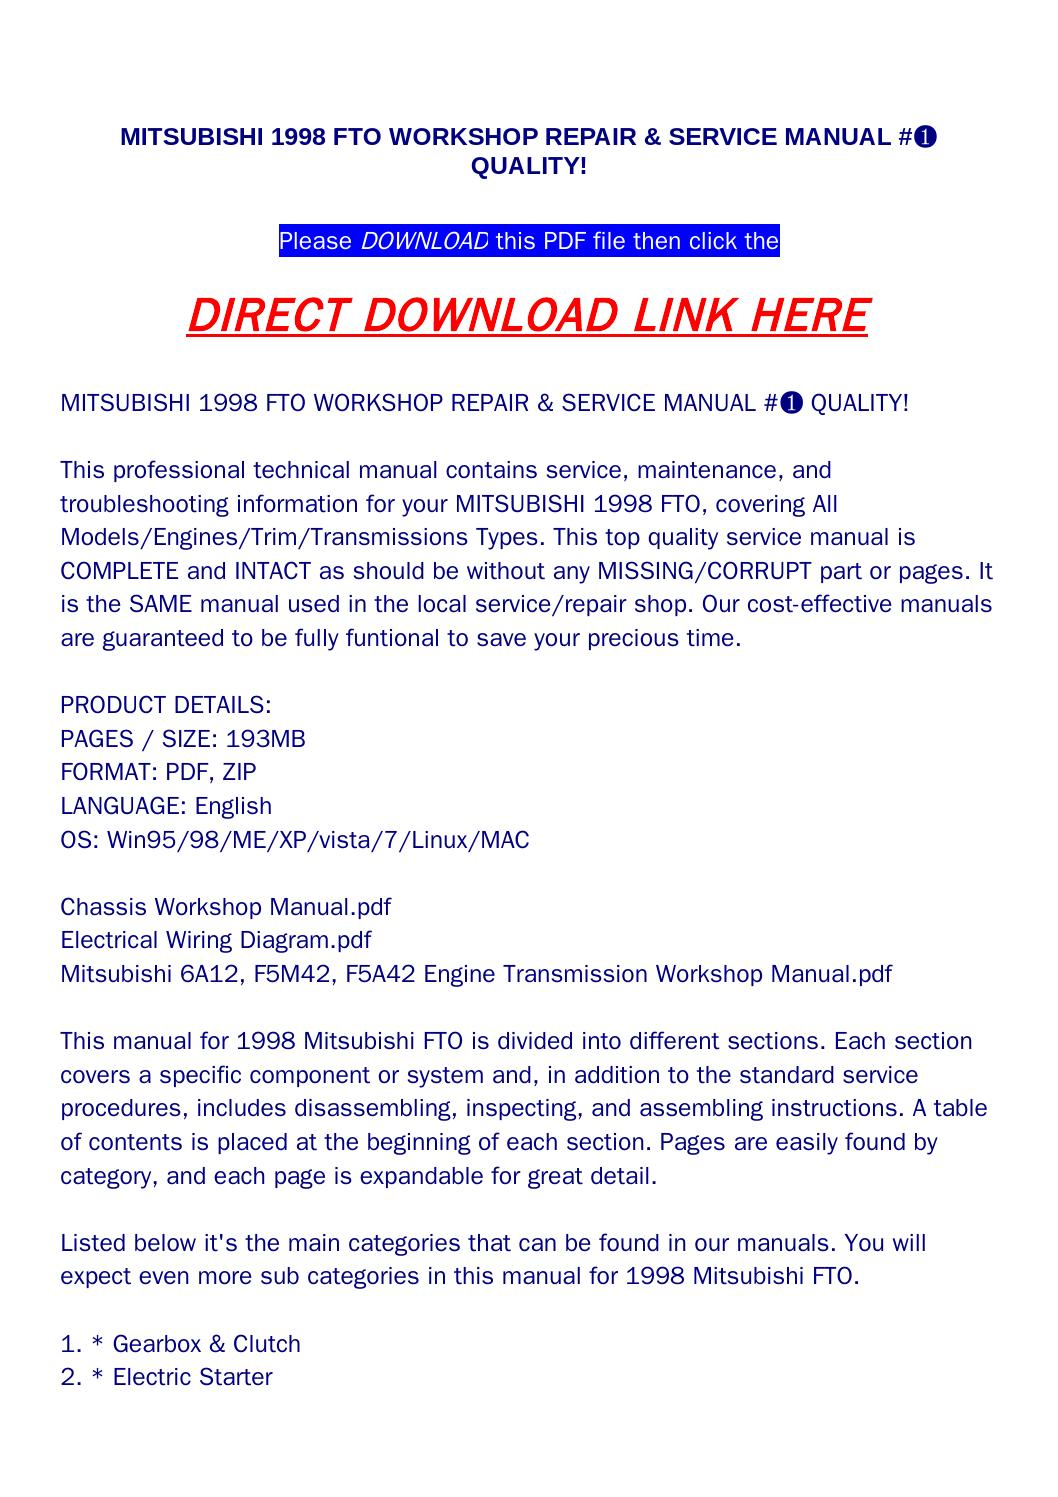 Mitsubishi 6a12 Wiring Diagram Schematic Diagrams 1998 3000gt Fuse Box Fto Workshop Repair Service Manual Quality By